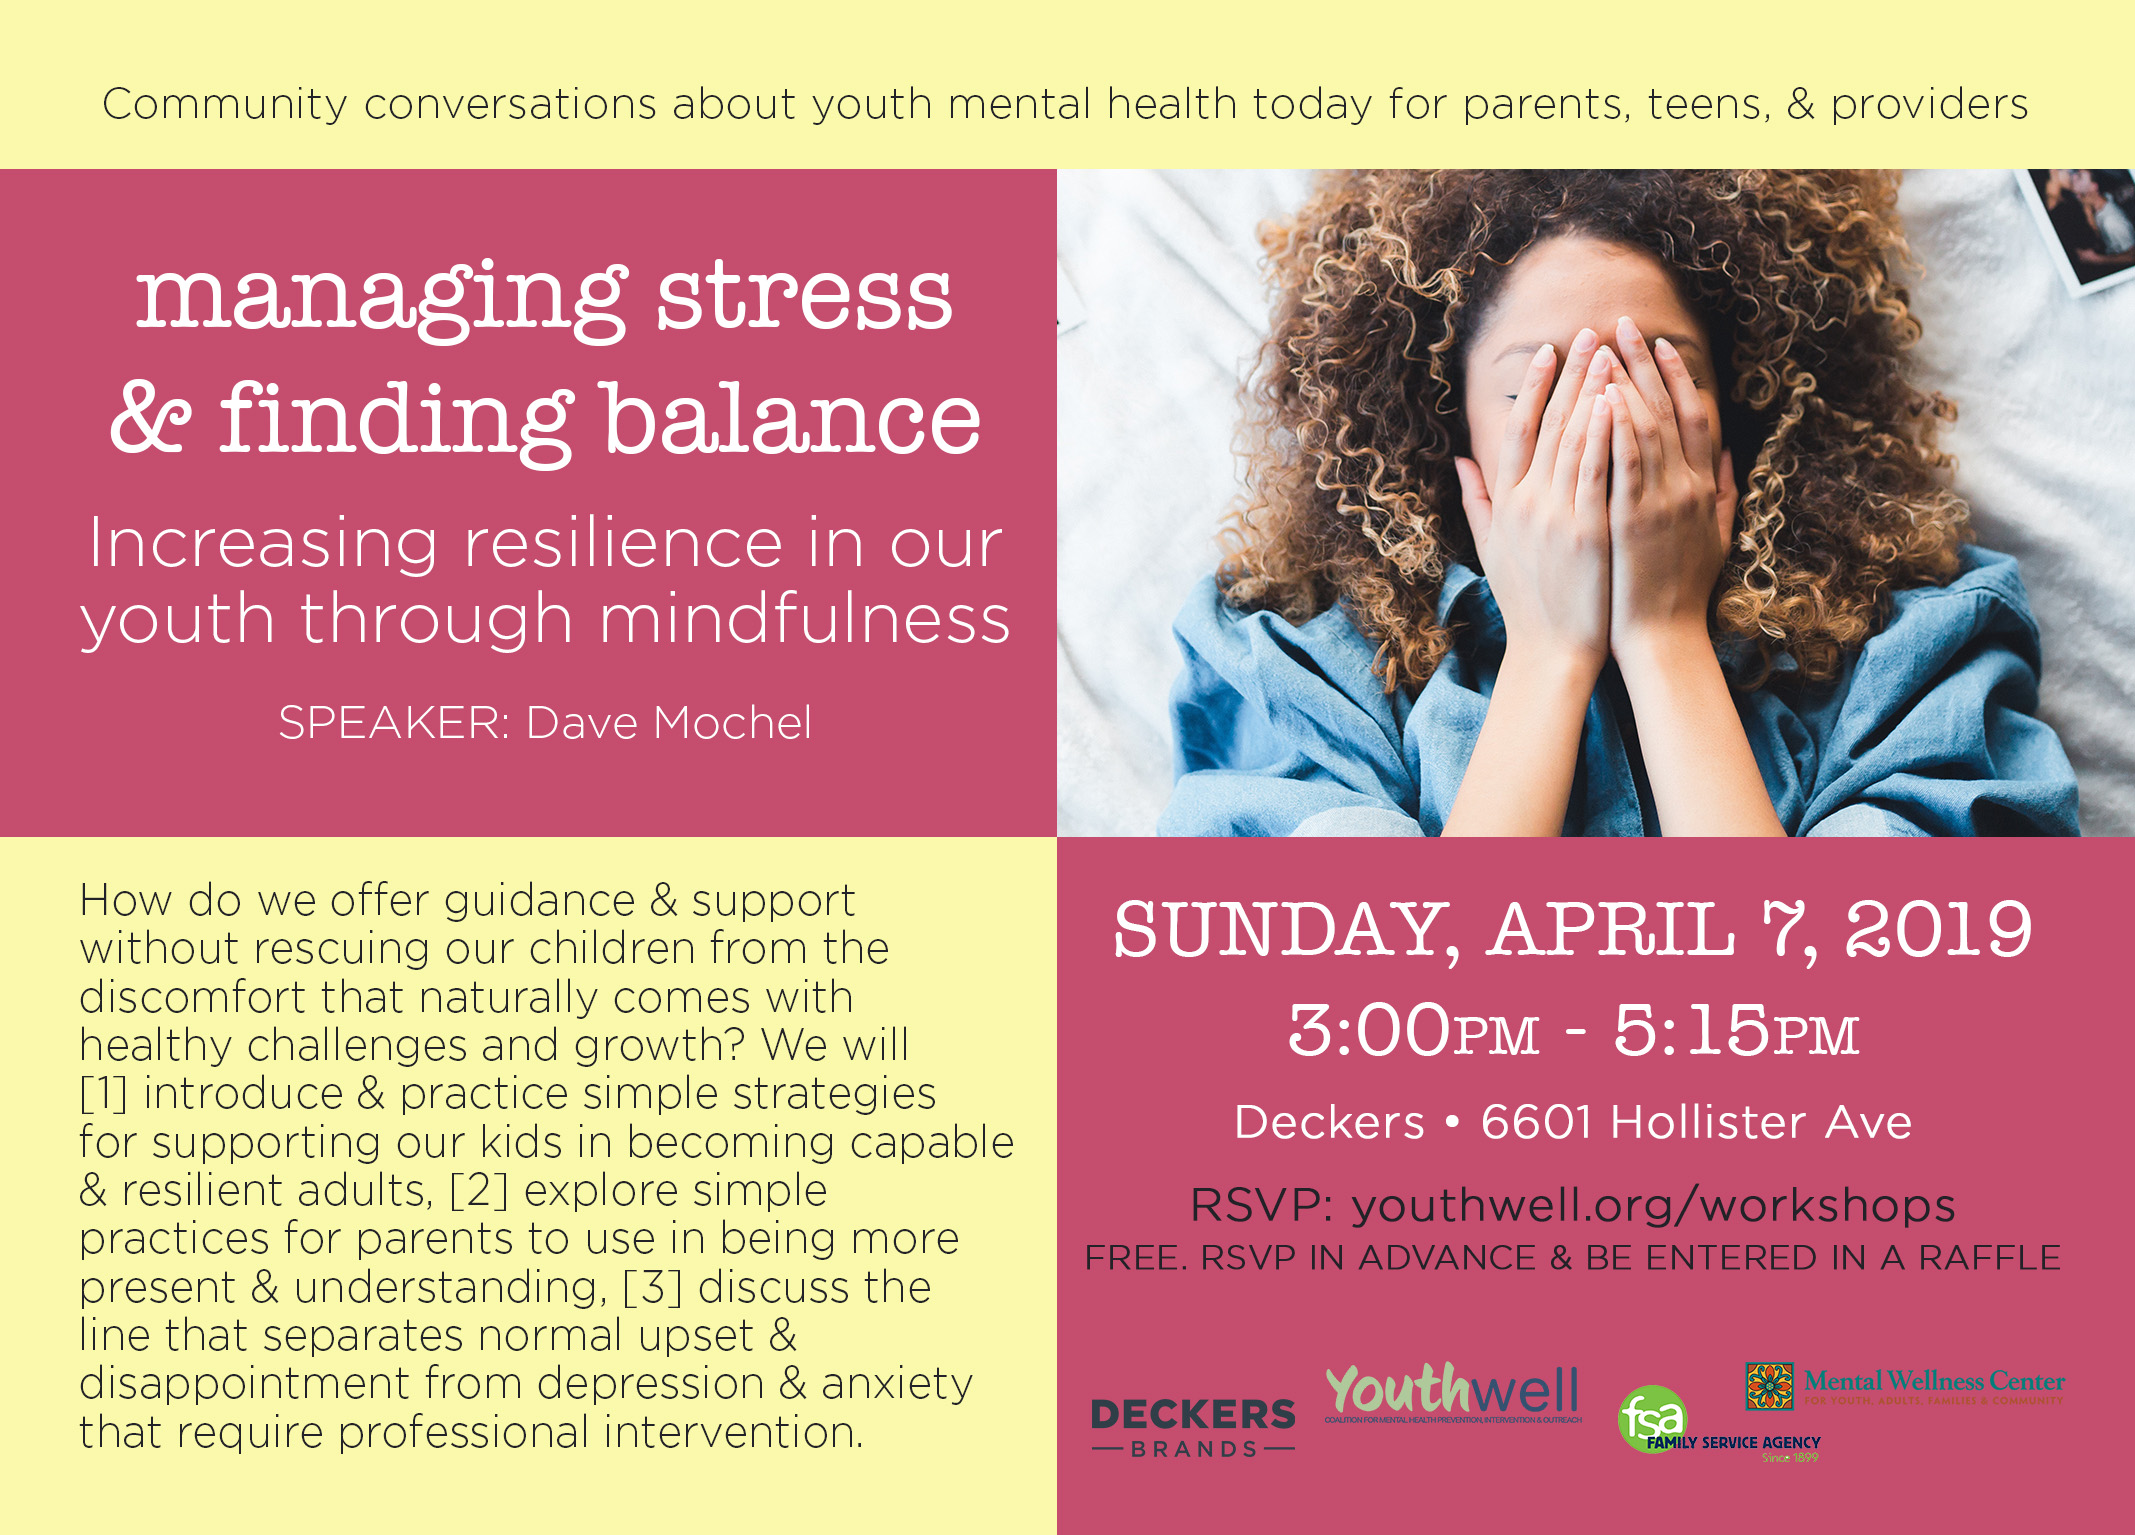 Managing stress & finding balance - increasing resilience in our youth through mindfulness & self-care title=